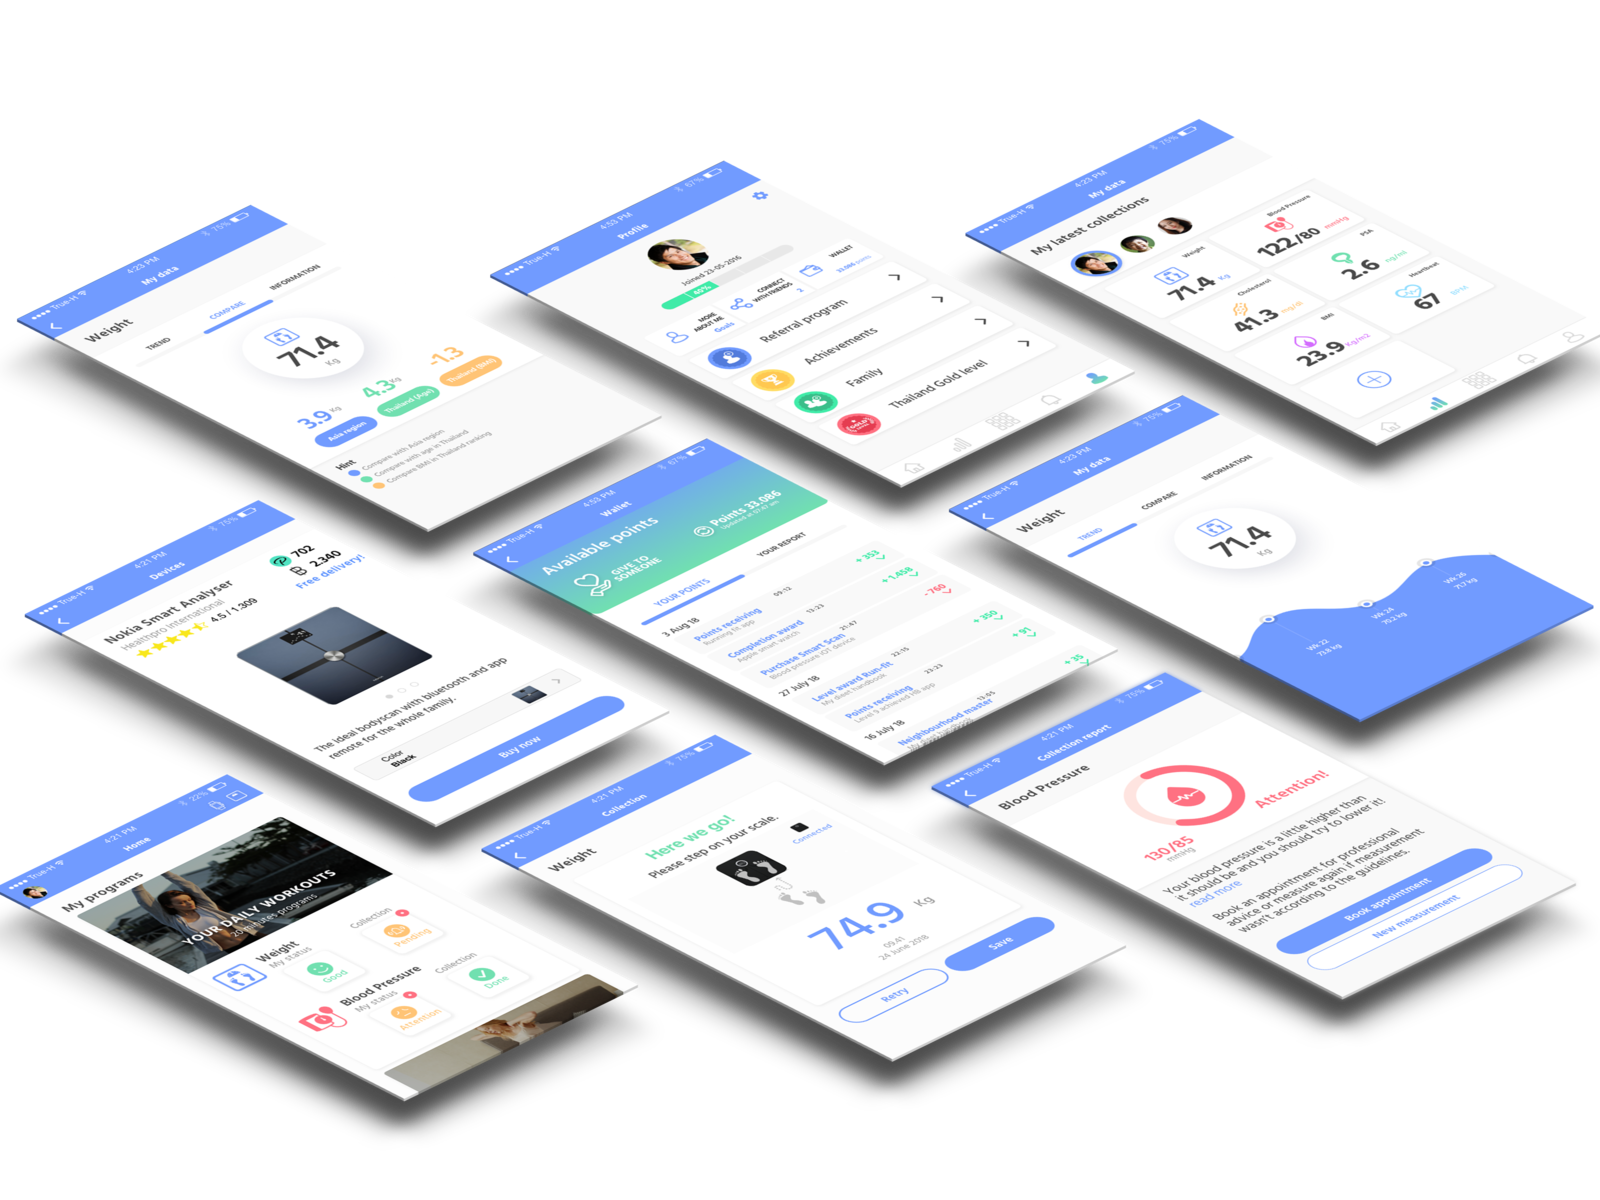 Mobile app mockup by Ralph Berk on Dribbble